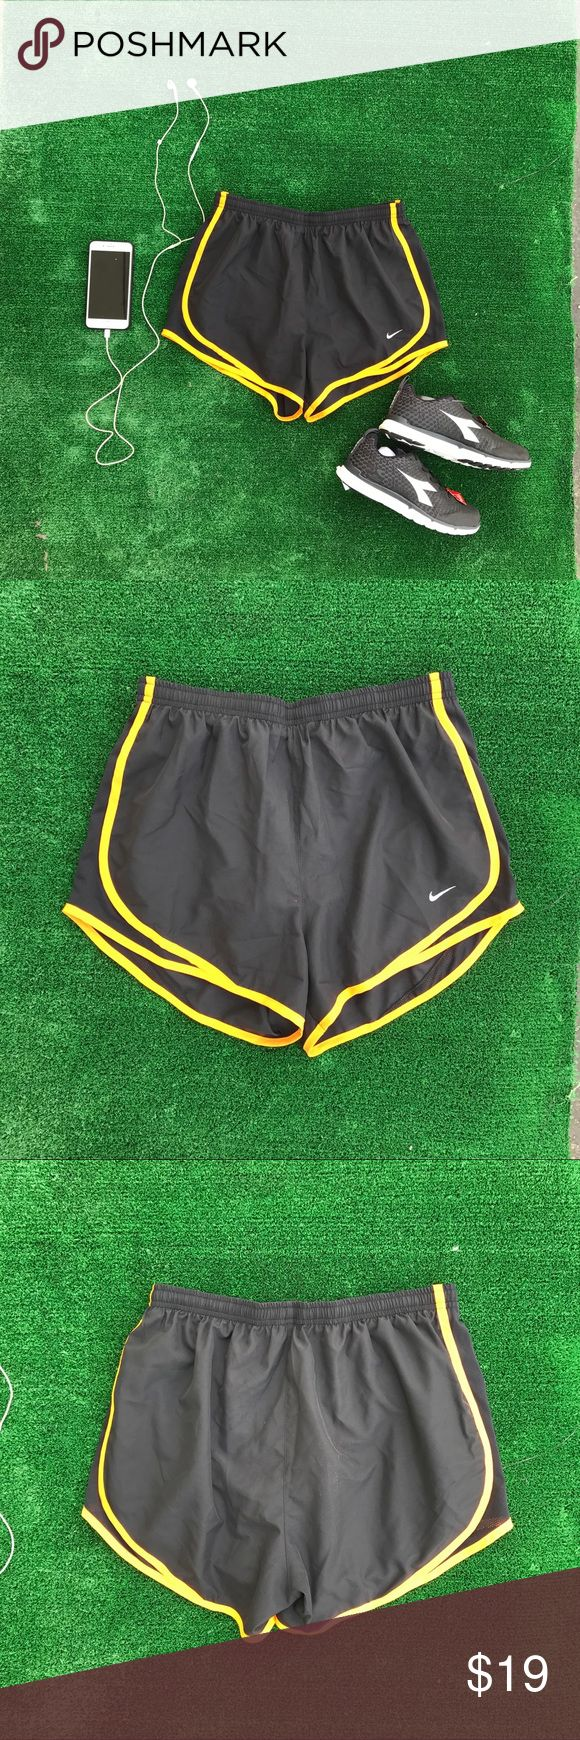 Nike Women's Dri Fit Tempo Black Orange Shorts 073 New with tags  Sizes xs-m  Great little shorts  For running and working out Nike Shorts